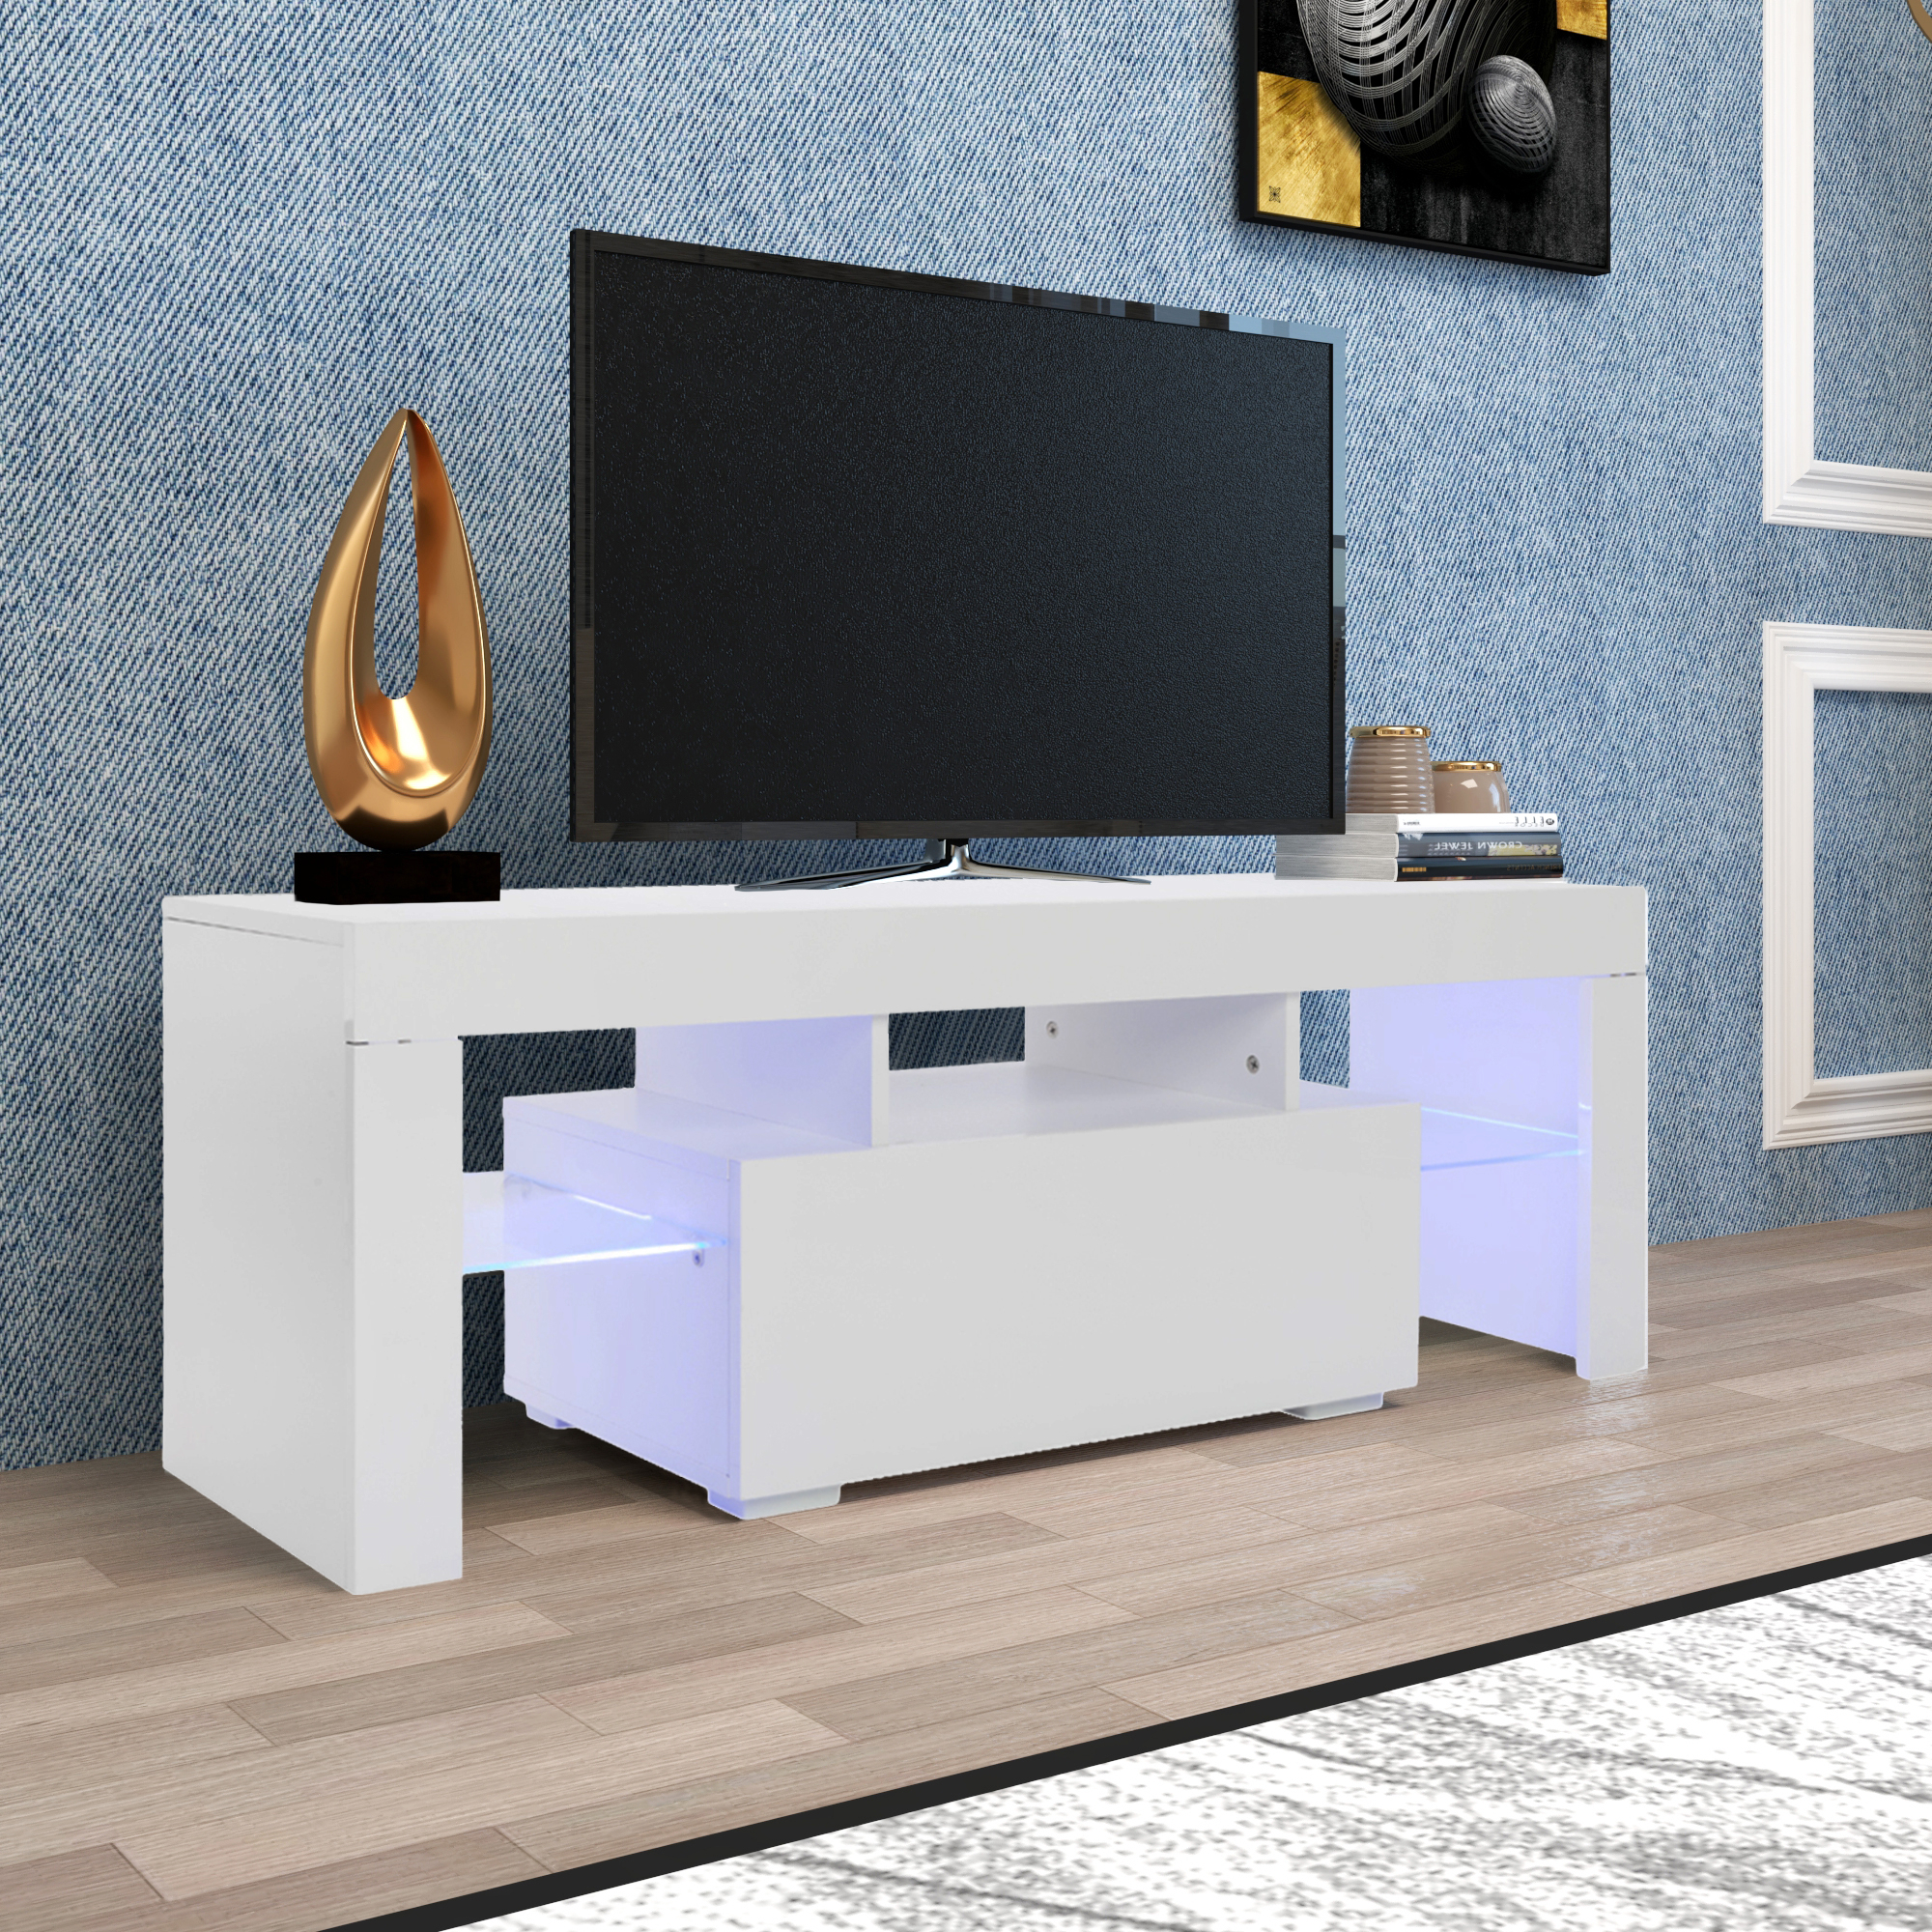 2018 Zimtown Tv Stands With High Gloss Led Lights Regarding Entertainment Centers And Tv Stands, Yofe Tv Stand With (View 3 of 10)